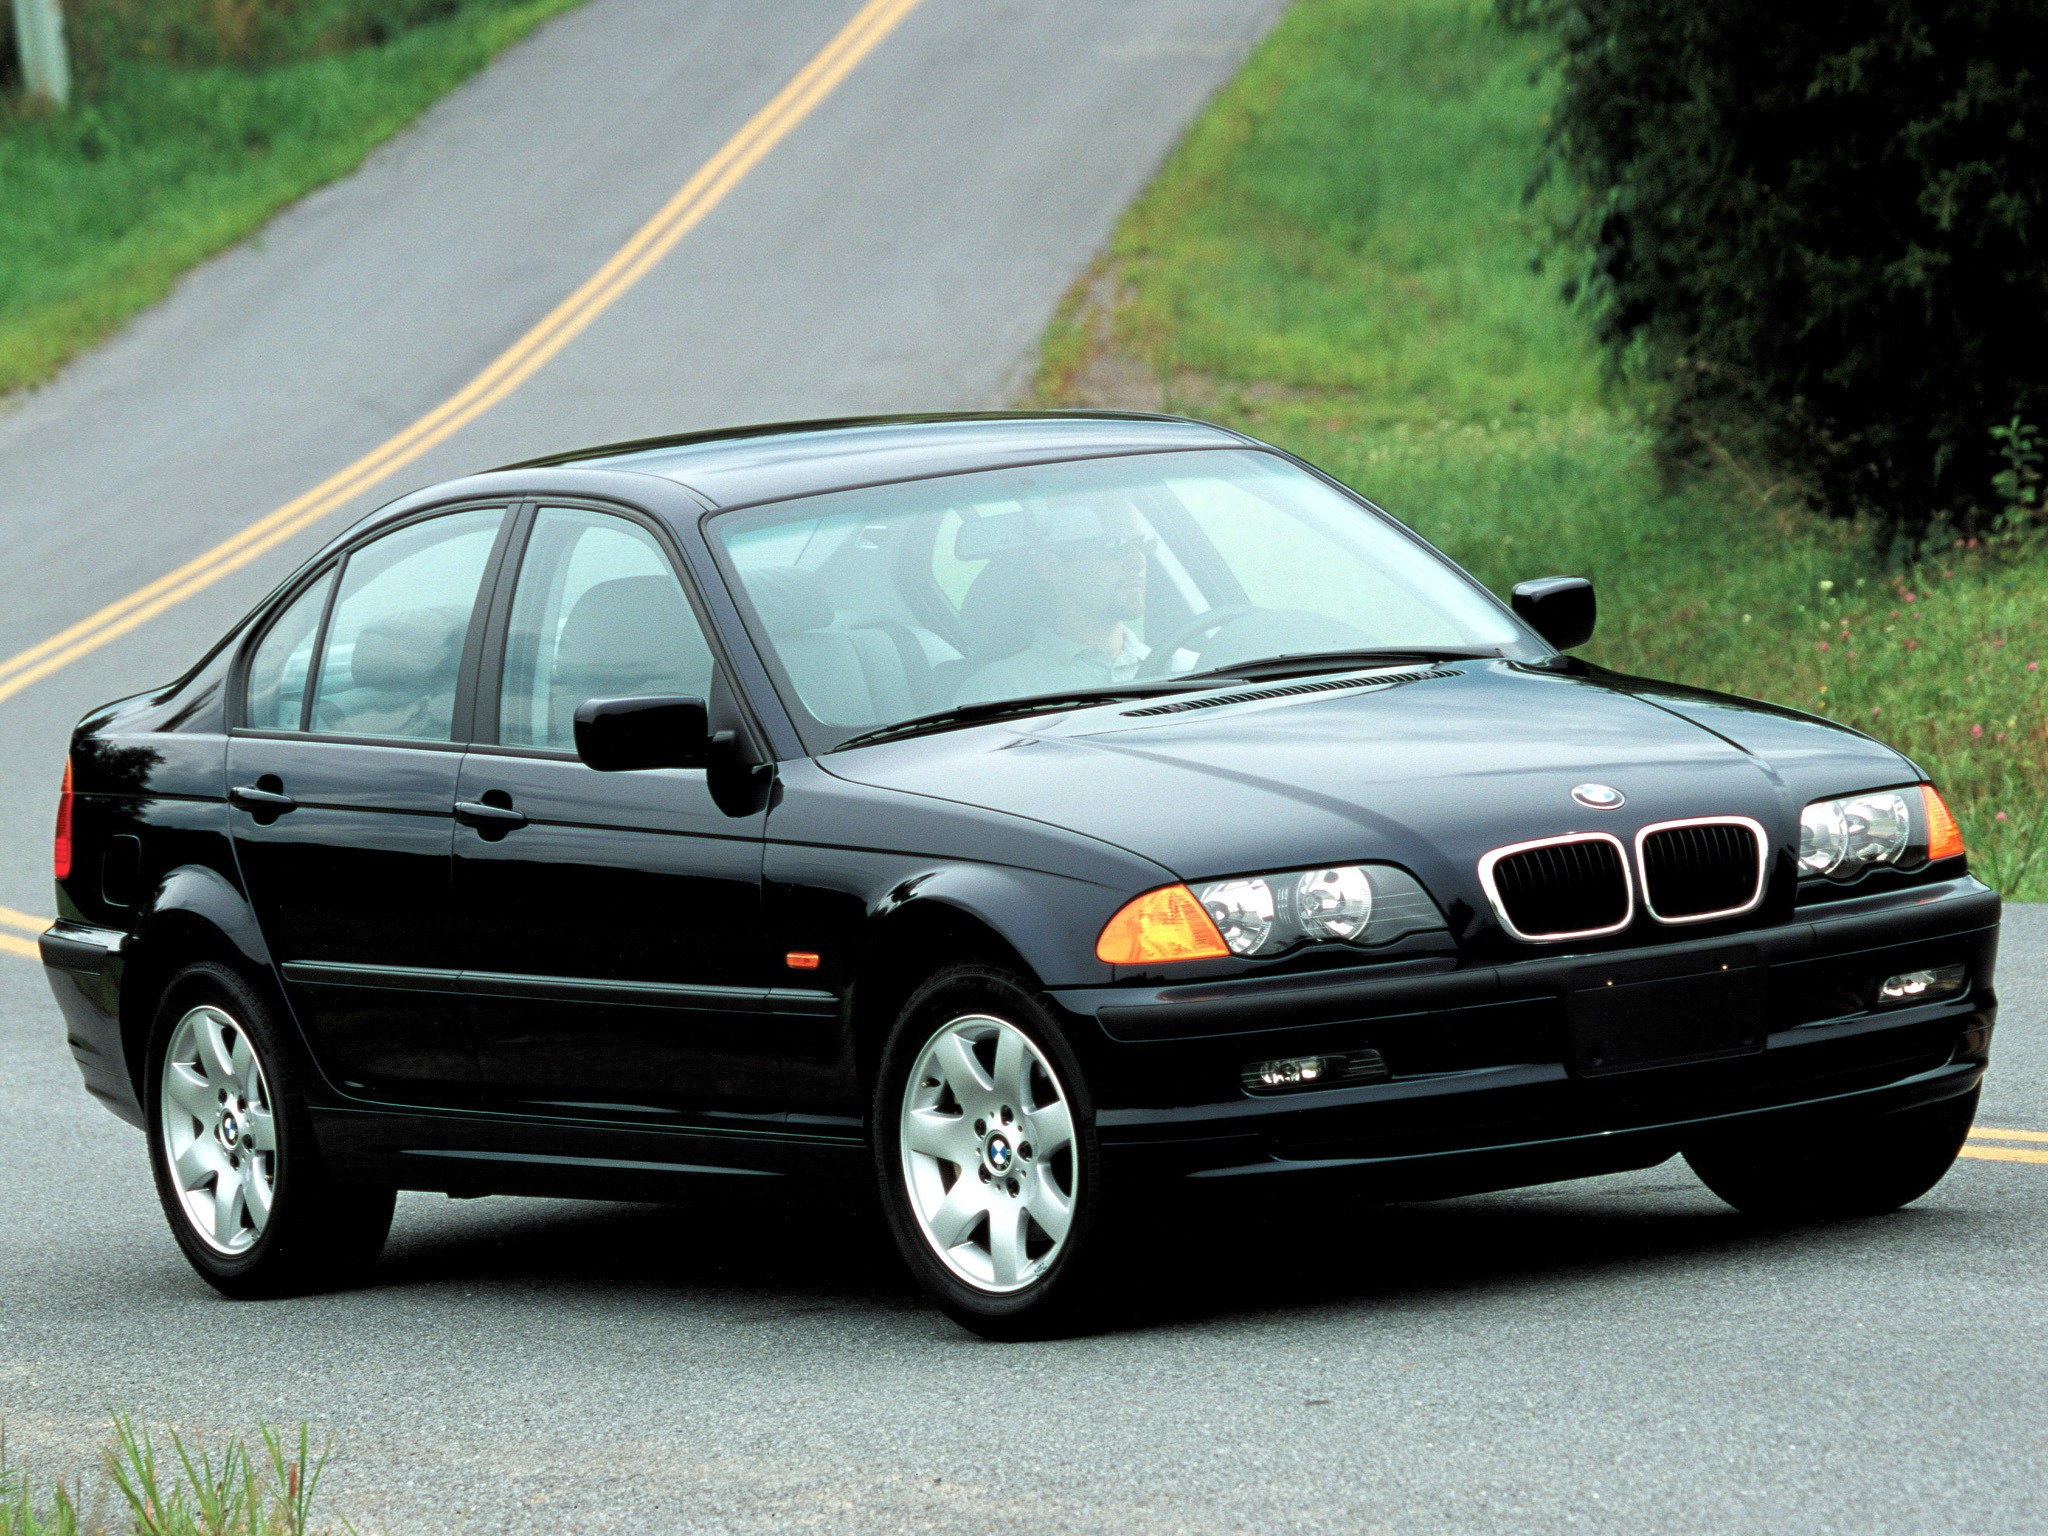 BMW 3 Series (E46) specs & photos - 1998, 1999, 2000, 2001, 2002